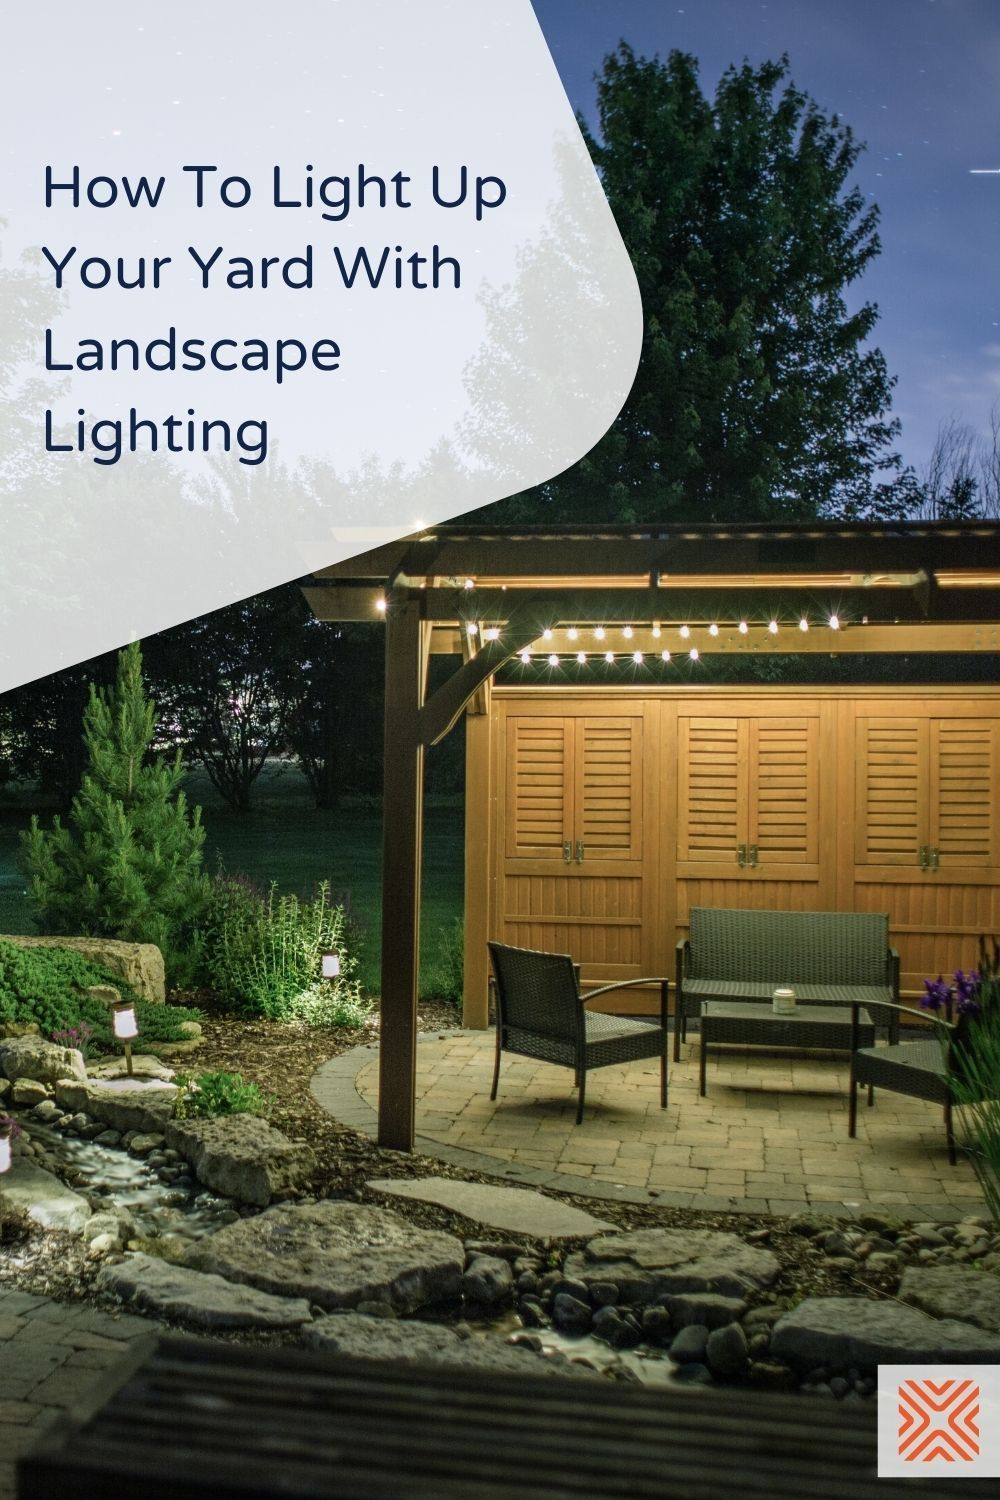 Check out this infographic with all the types of lighting and lighting design tips you need to light up your backyard like a pro. Visit our website for more!